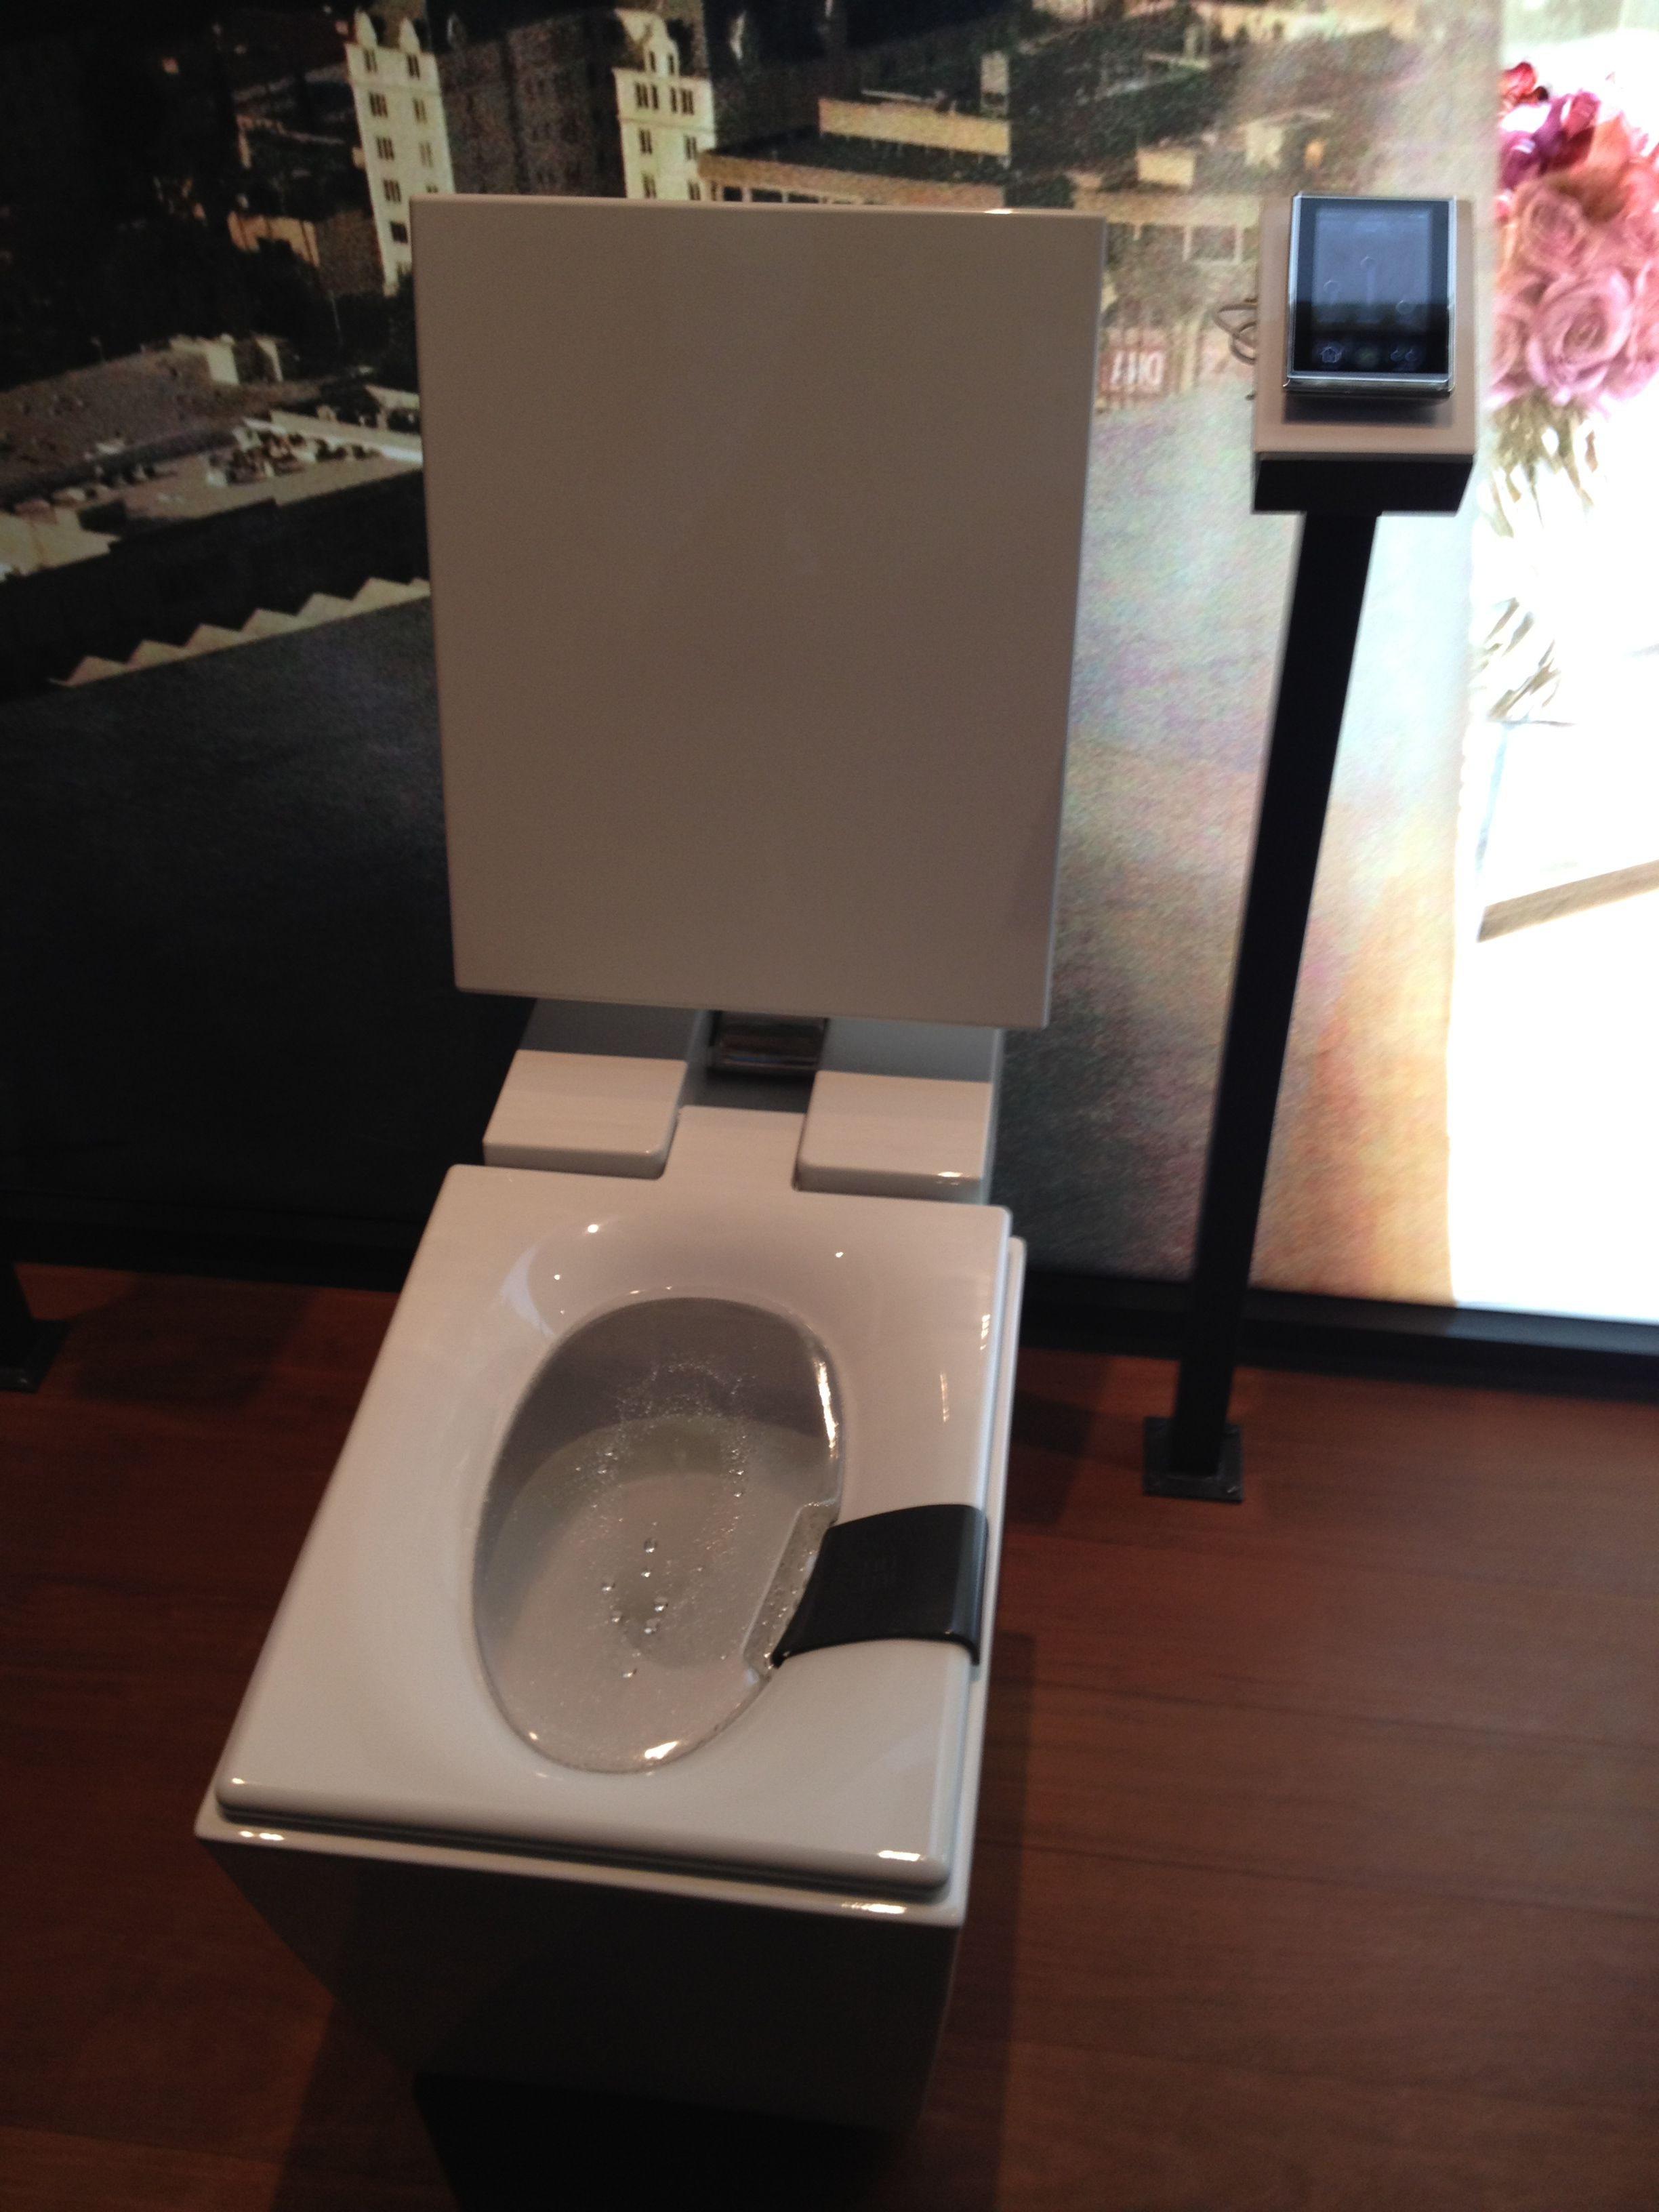 Kohler Numi A Toilet With Heated Seats And Motion Sensors That